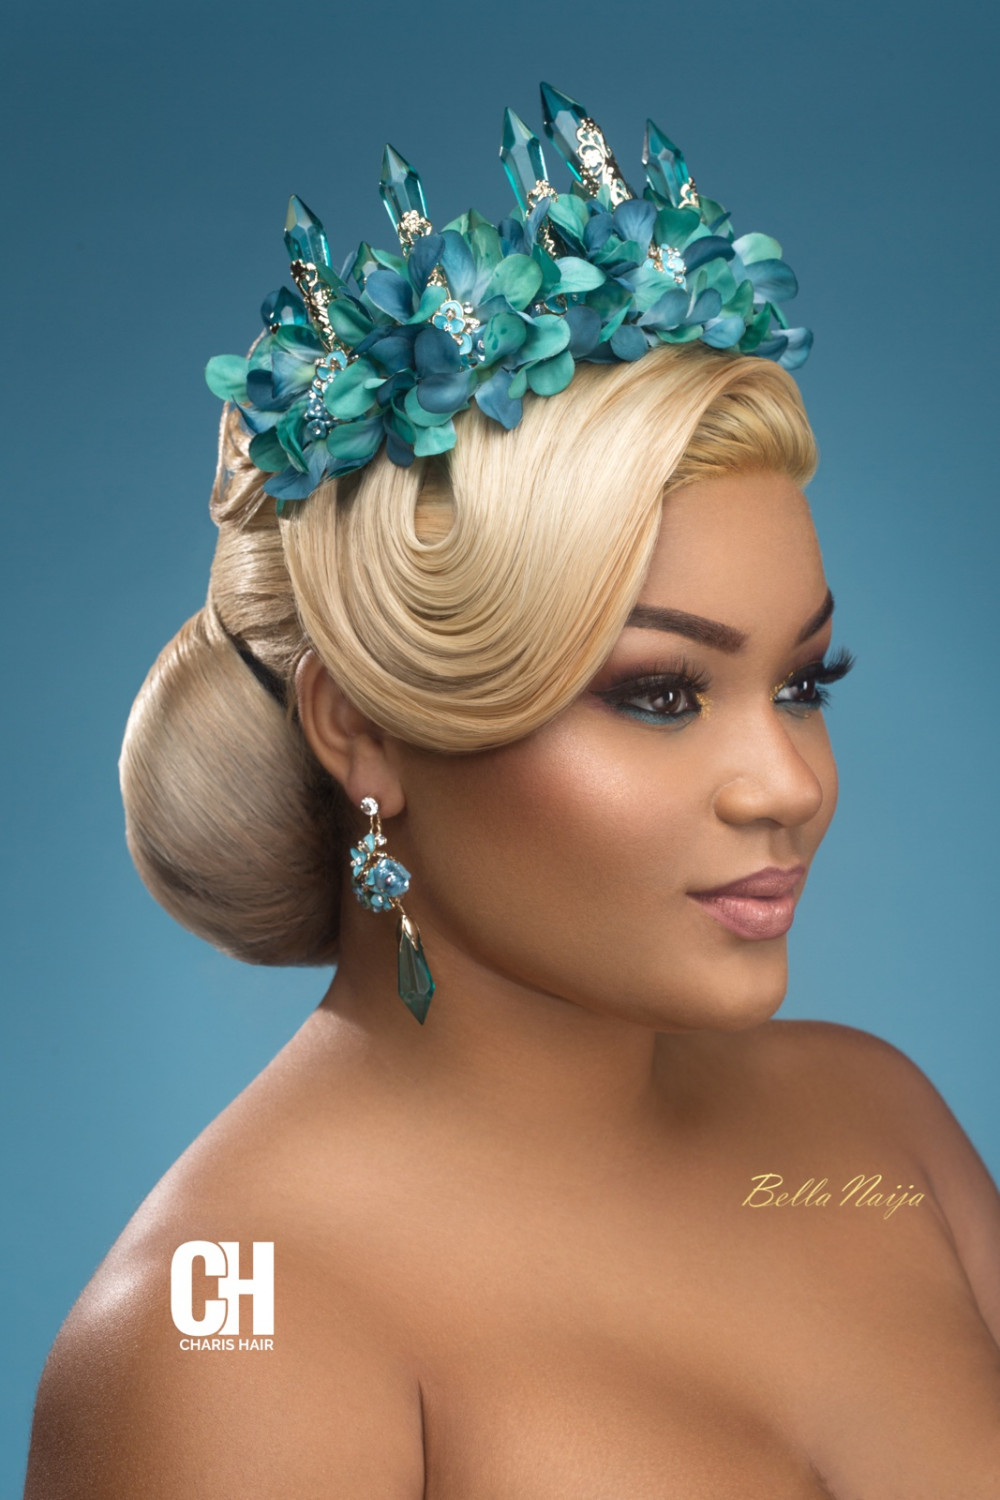 BN Bridal Beauty: Hair Of Thrones Is A Celebration Of